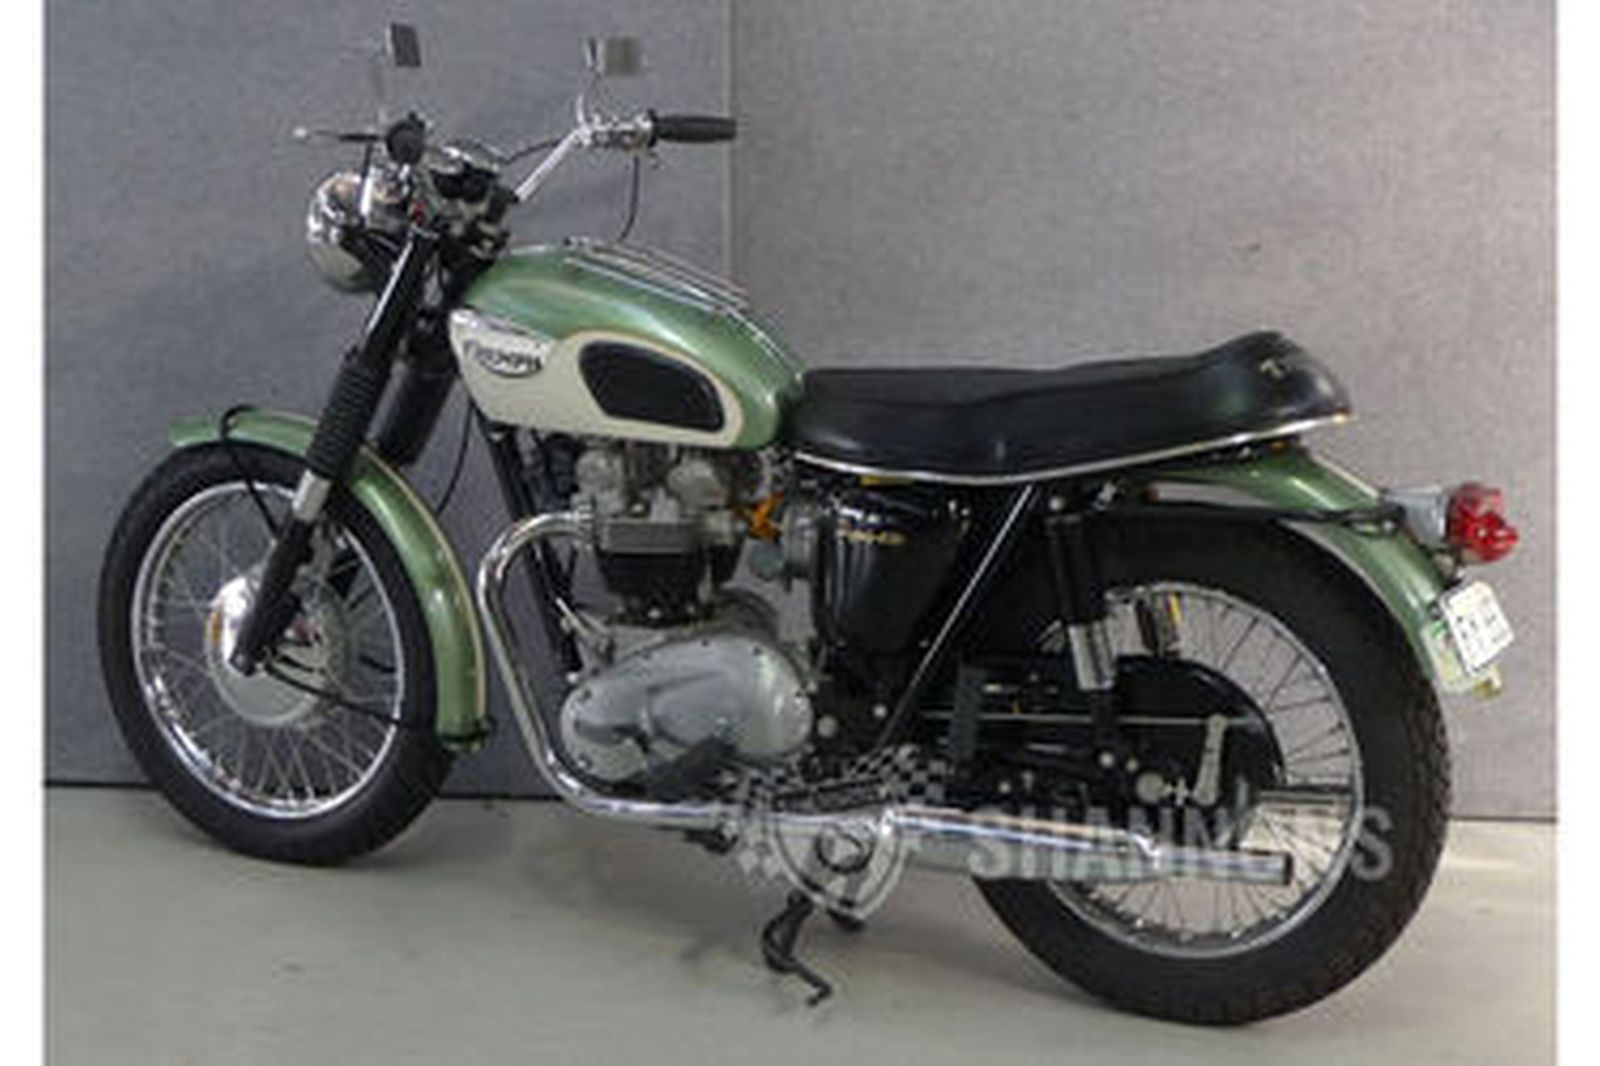 Triumph Tr6 Trophy 650cc Motorcycle Auctions Lot 37